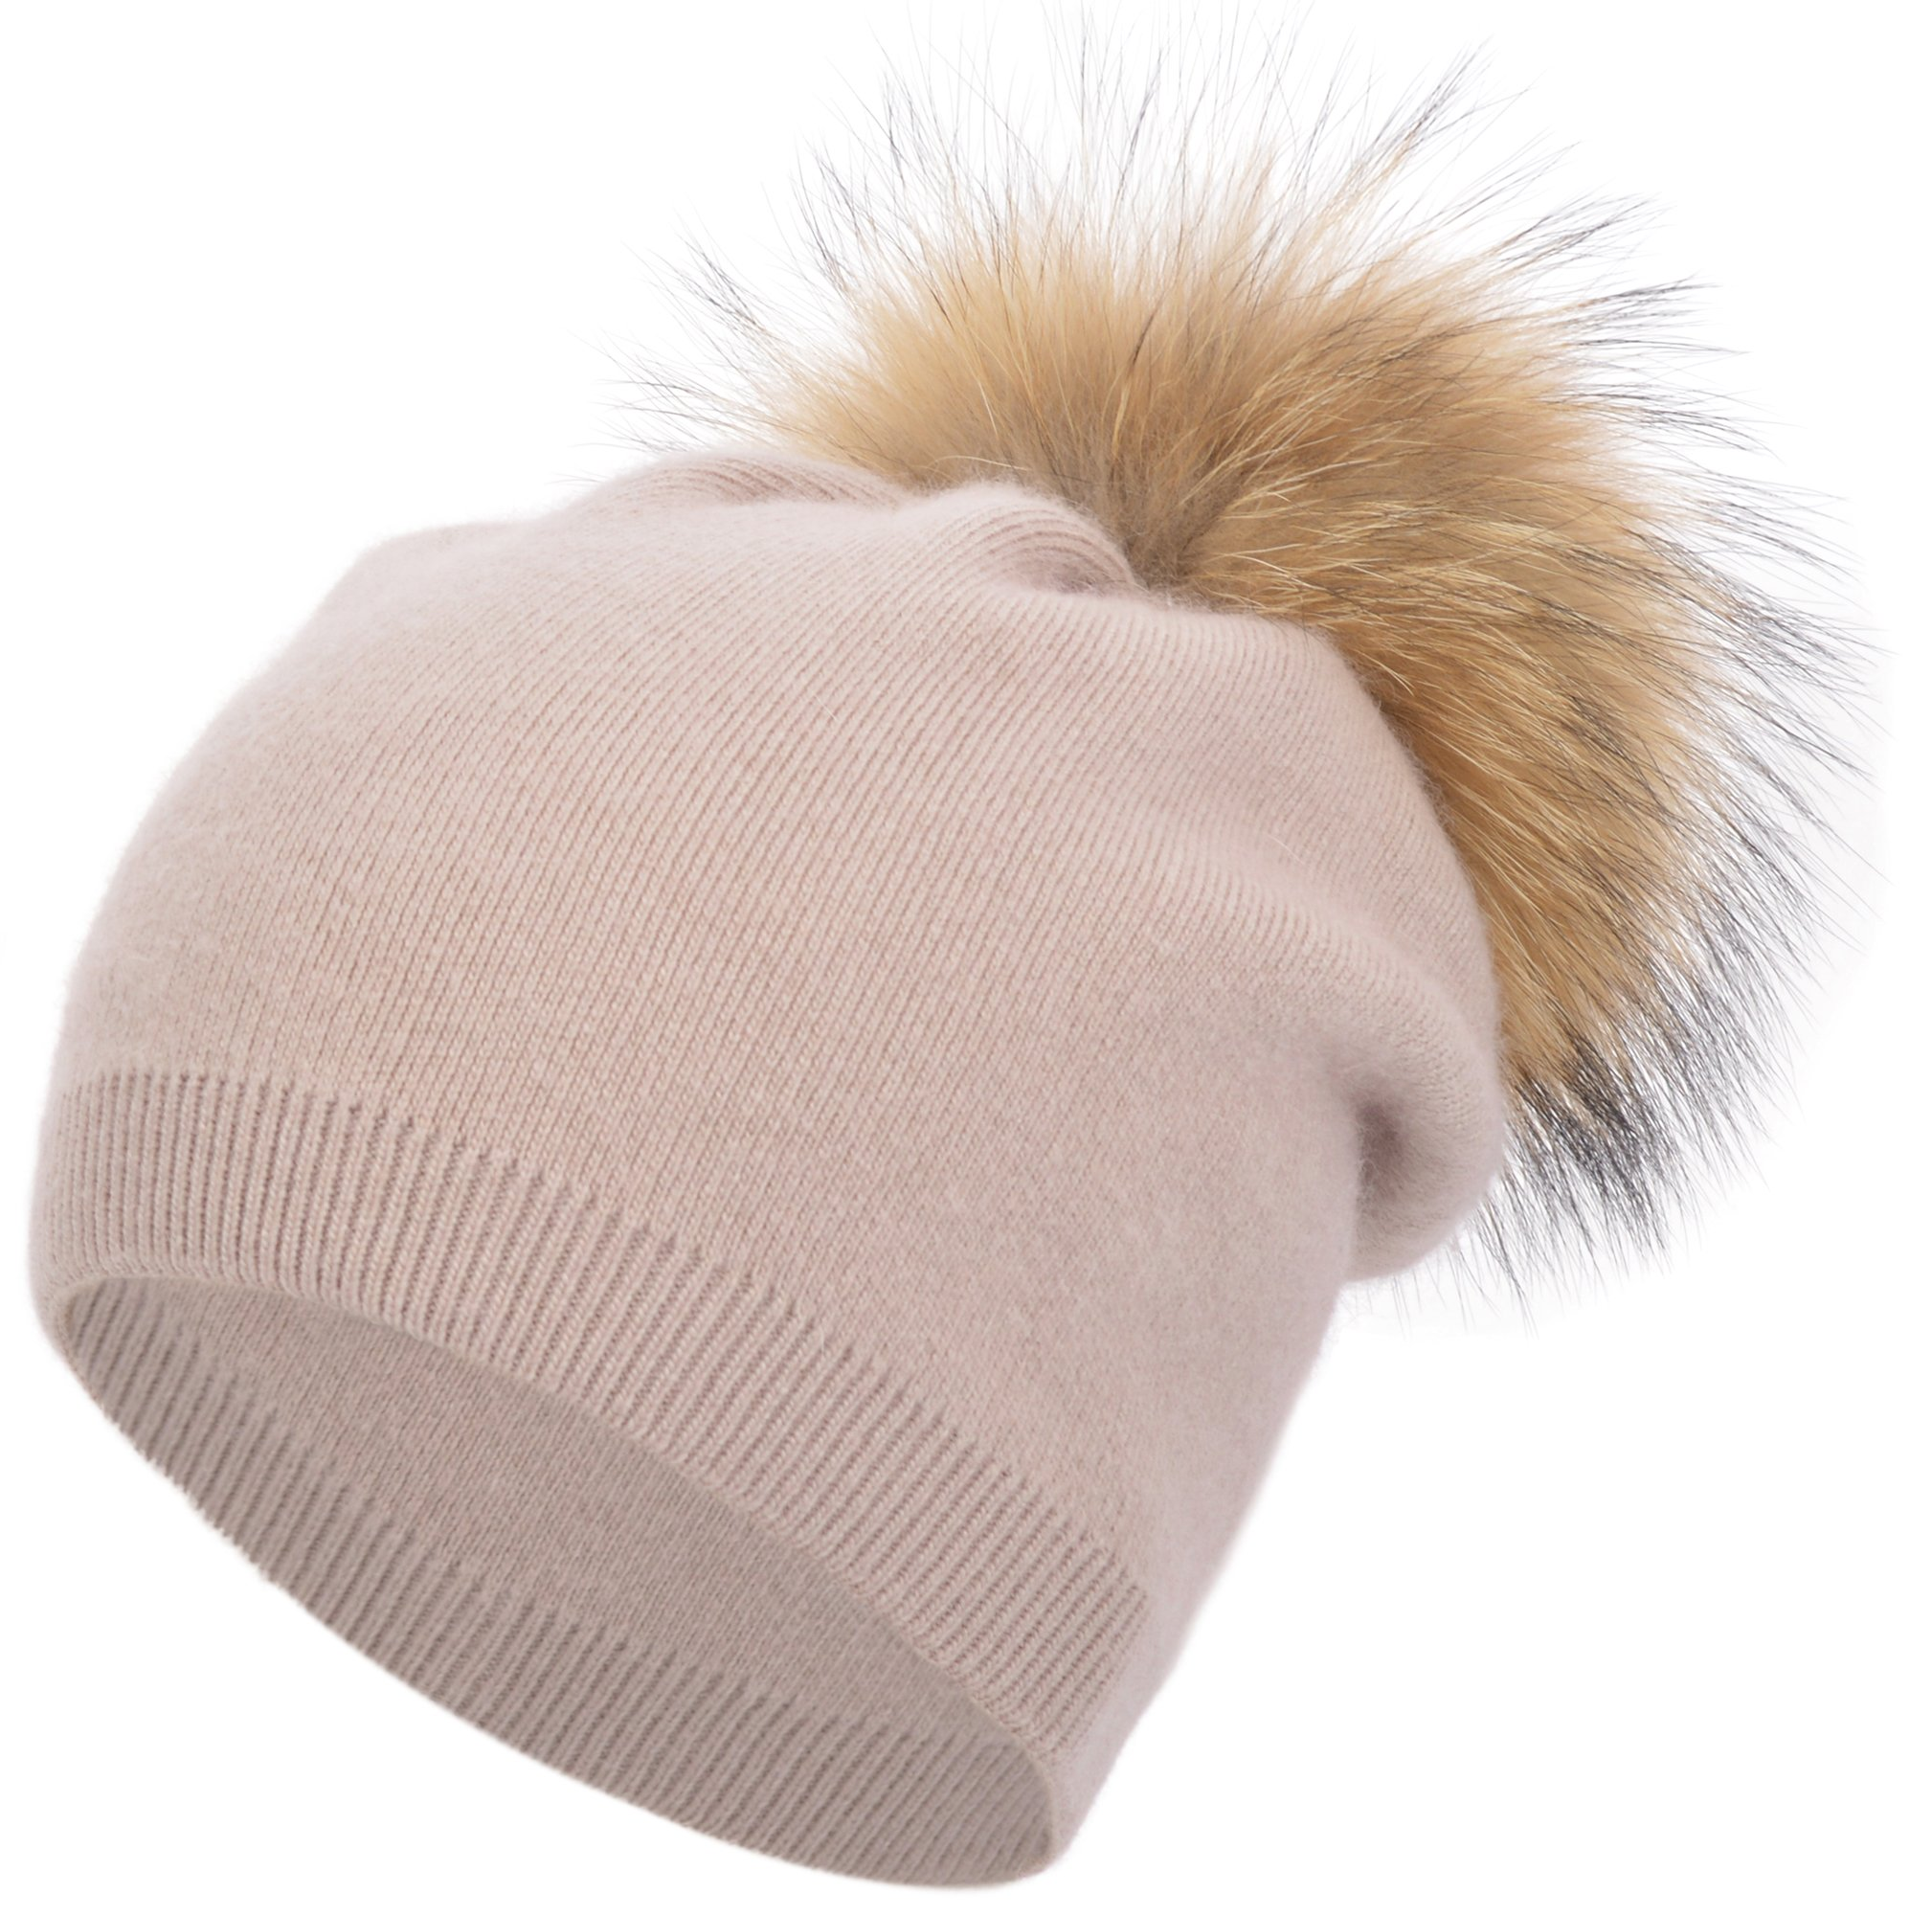 Women's Winter Warm Double-Deck Cashmere Wool Blend Real Fur Pom Pom Slouchy Knit Beanie Cap Ski Hat (Dirty Pink)